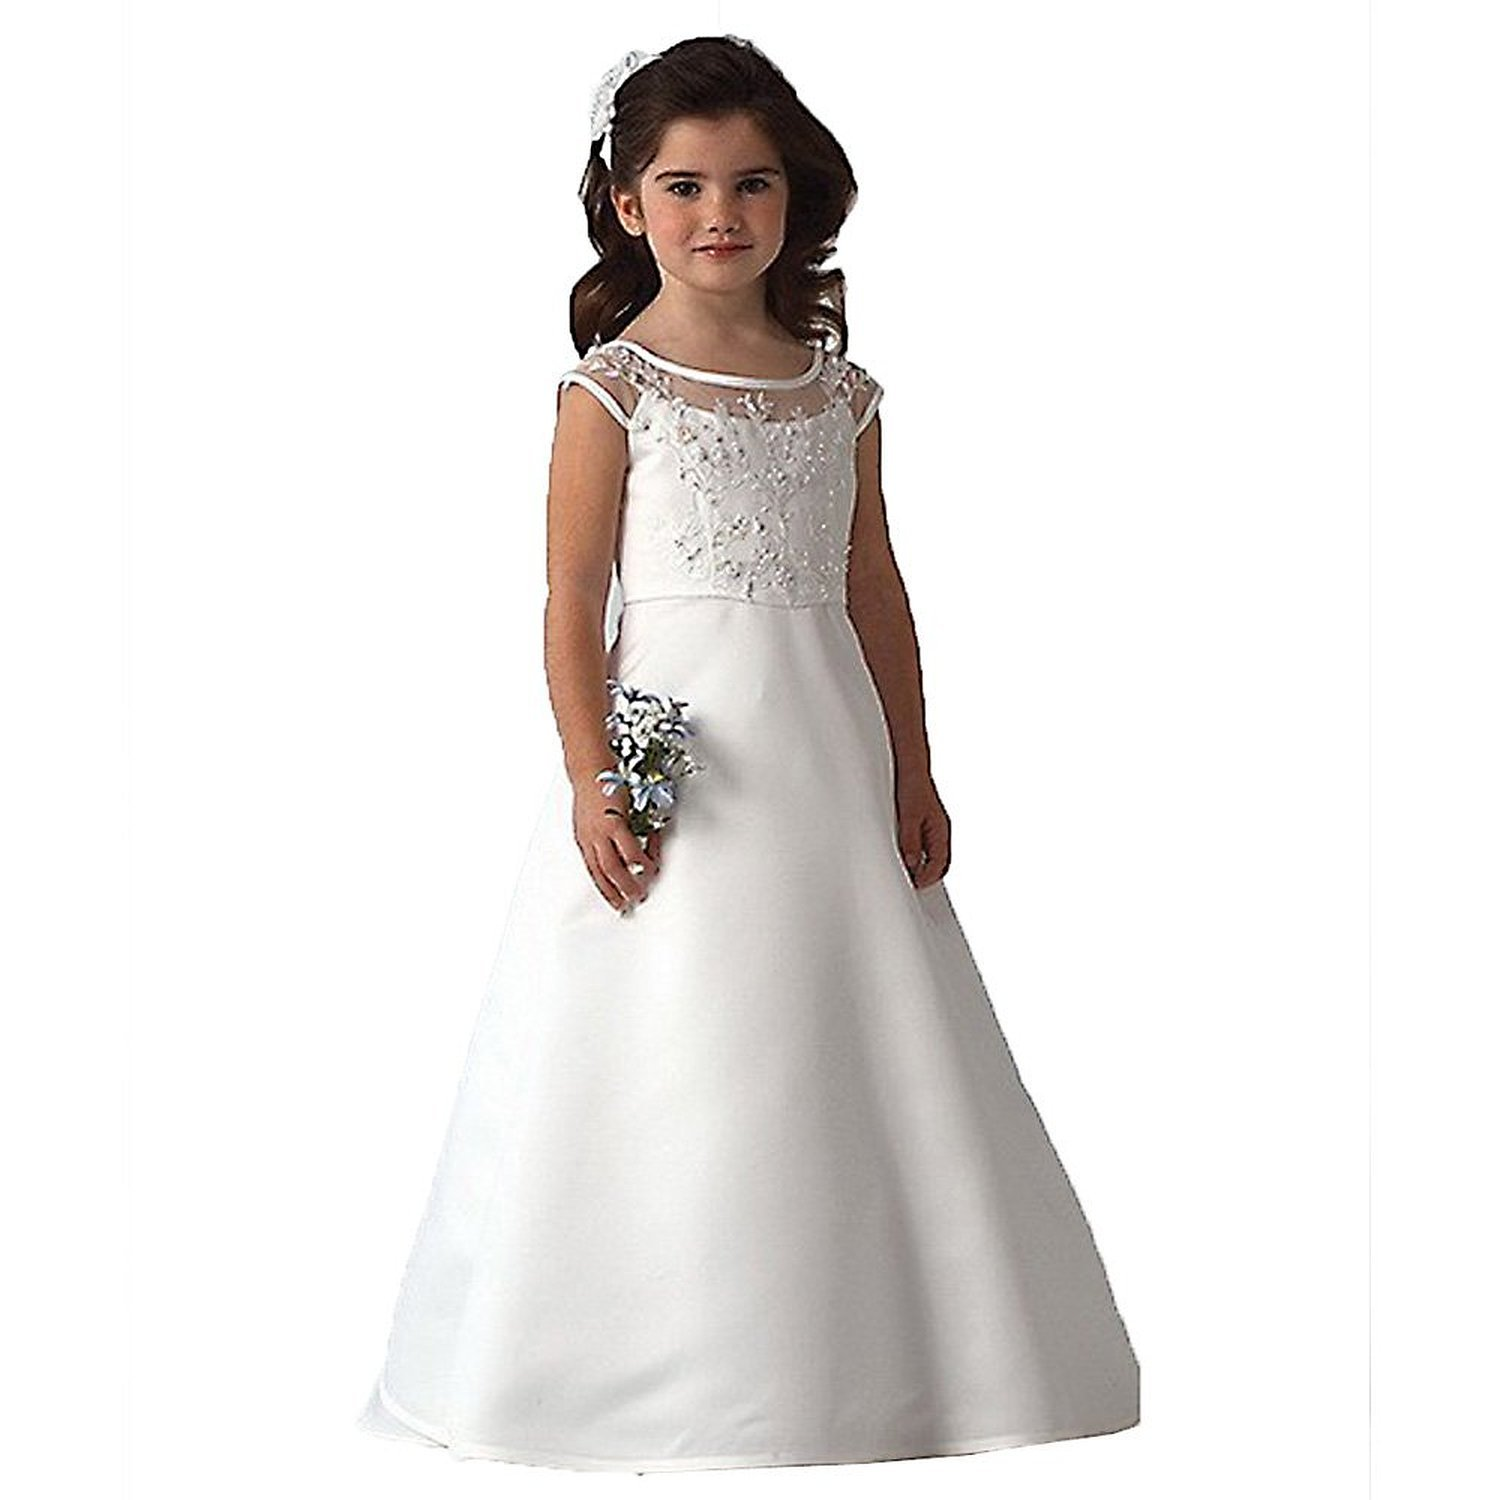 Pigpig White A-Line Cap Sleeves Flower Girl First Communion Dresses China